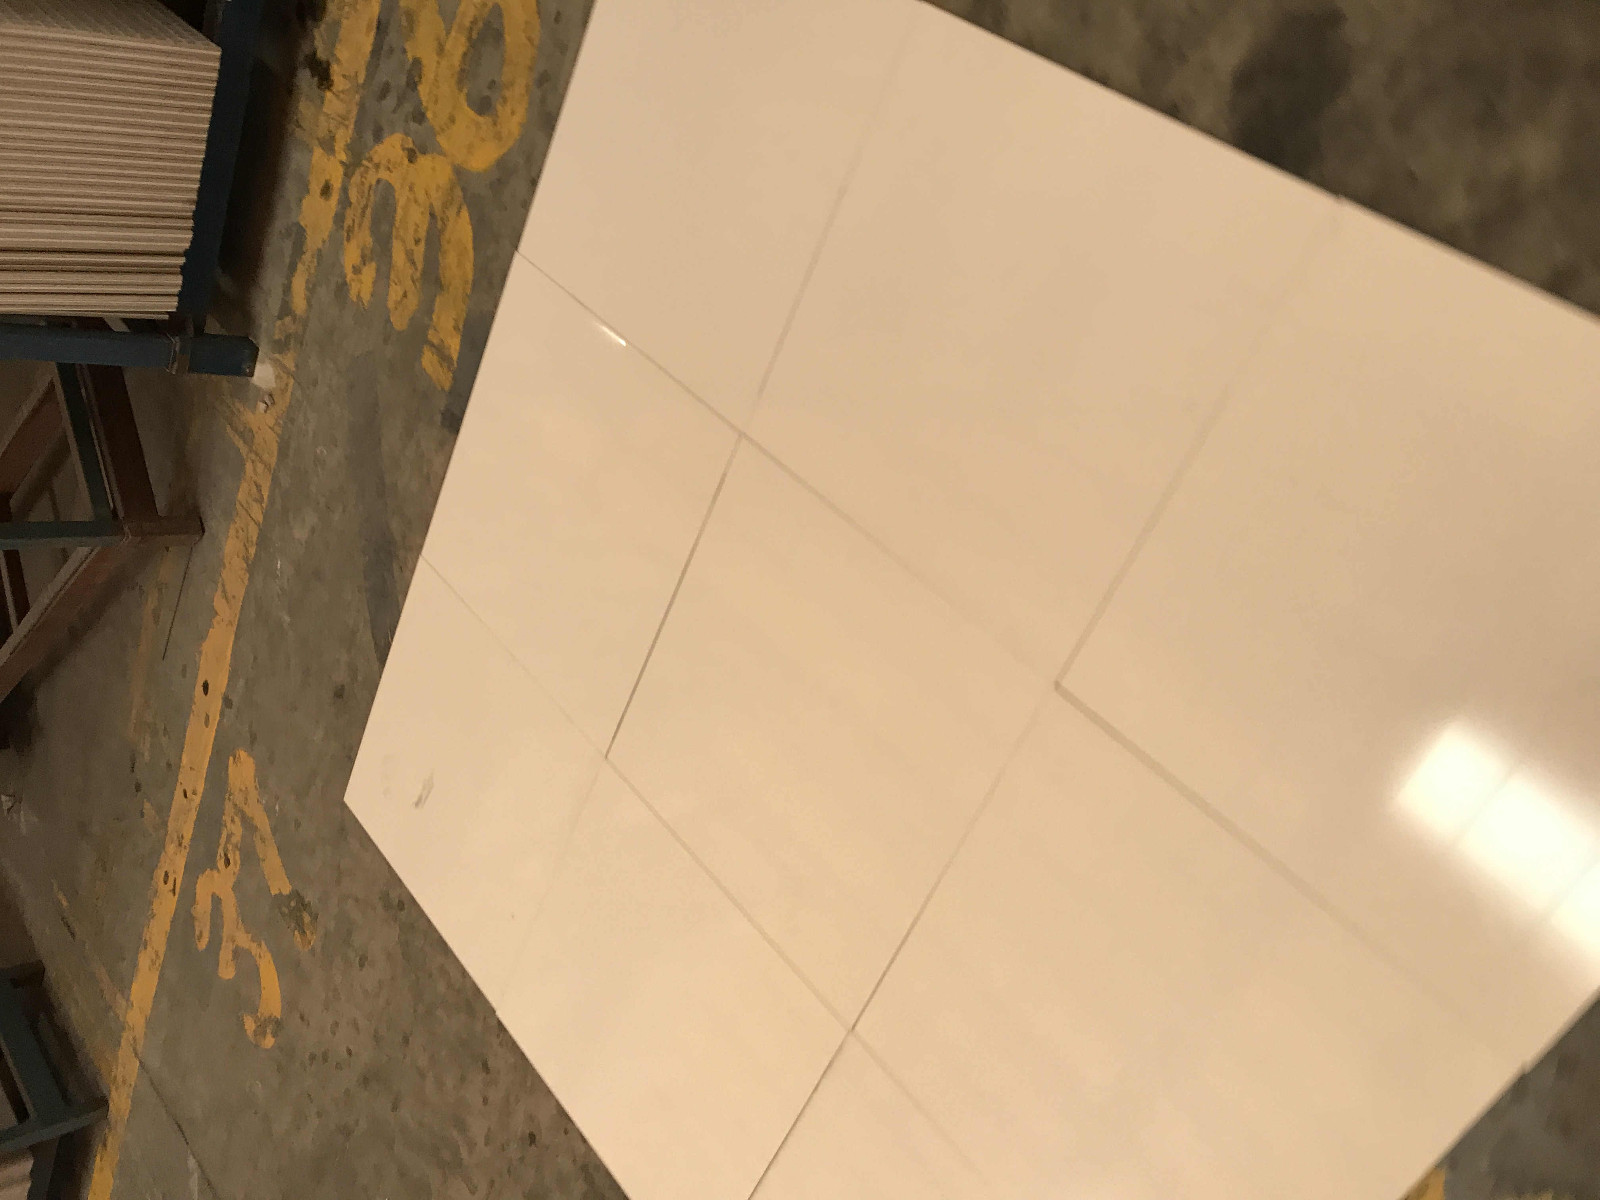 60 & 80 Tino Marble Light Grey Soft polished & Glossy Glaze Marble Tile SJ66G0C04T/M-13